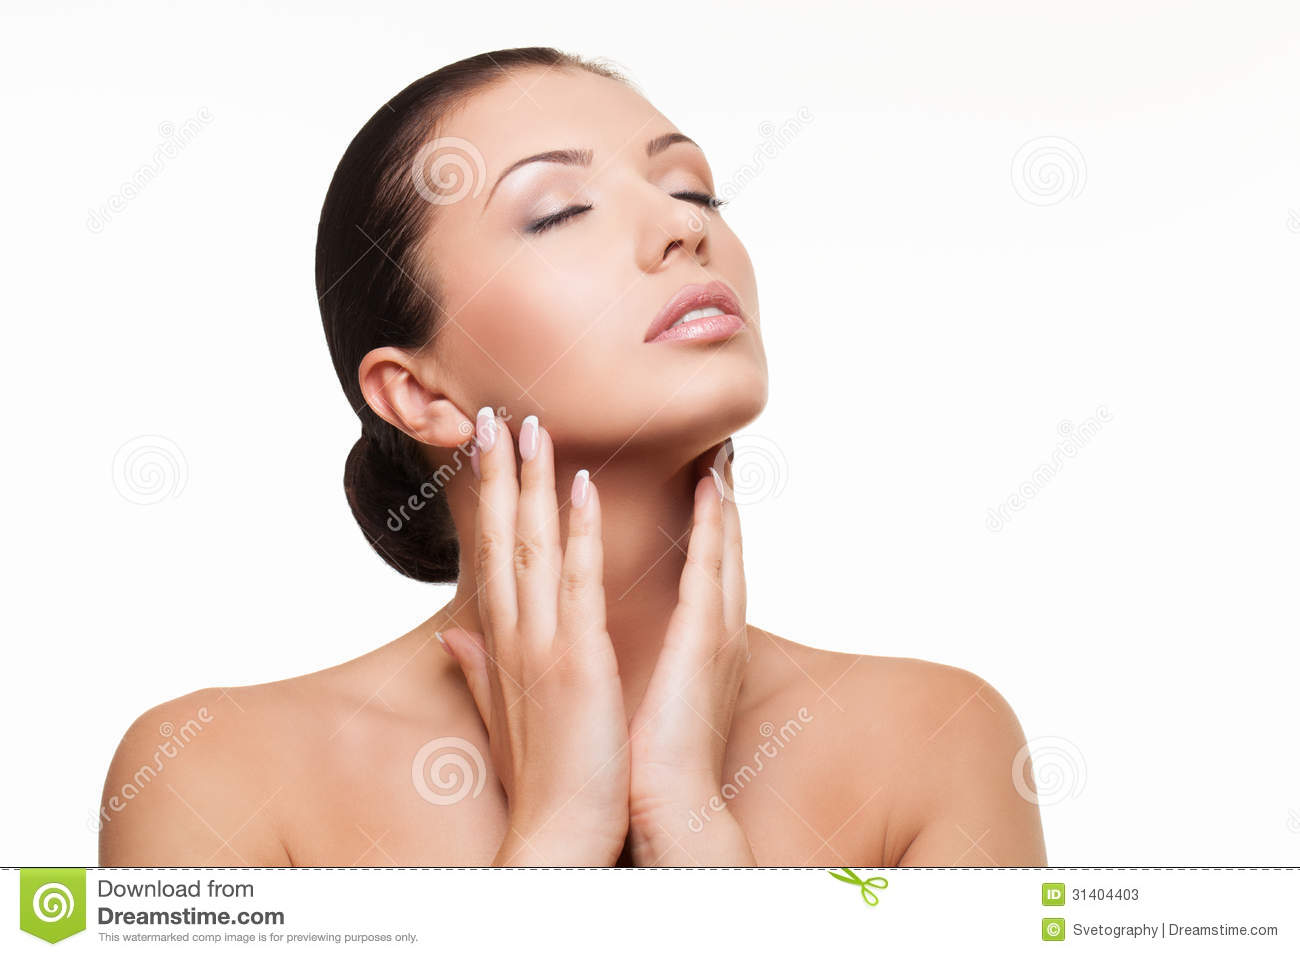 Woman With Eyes Closed Stock Photos - Image: 31404403